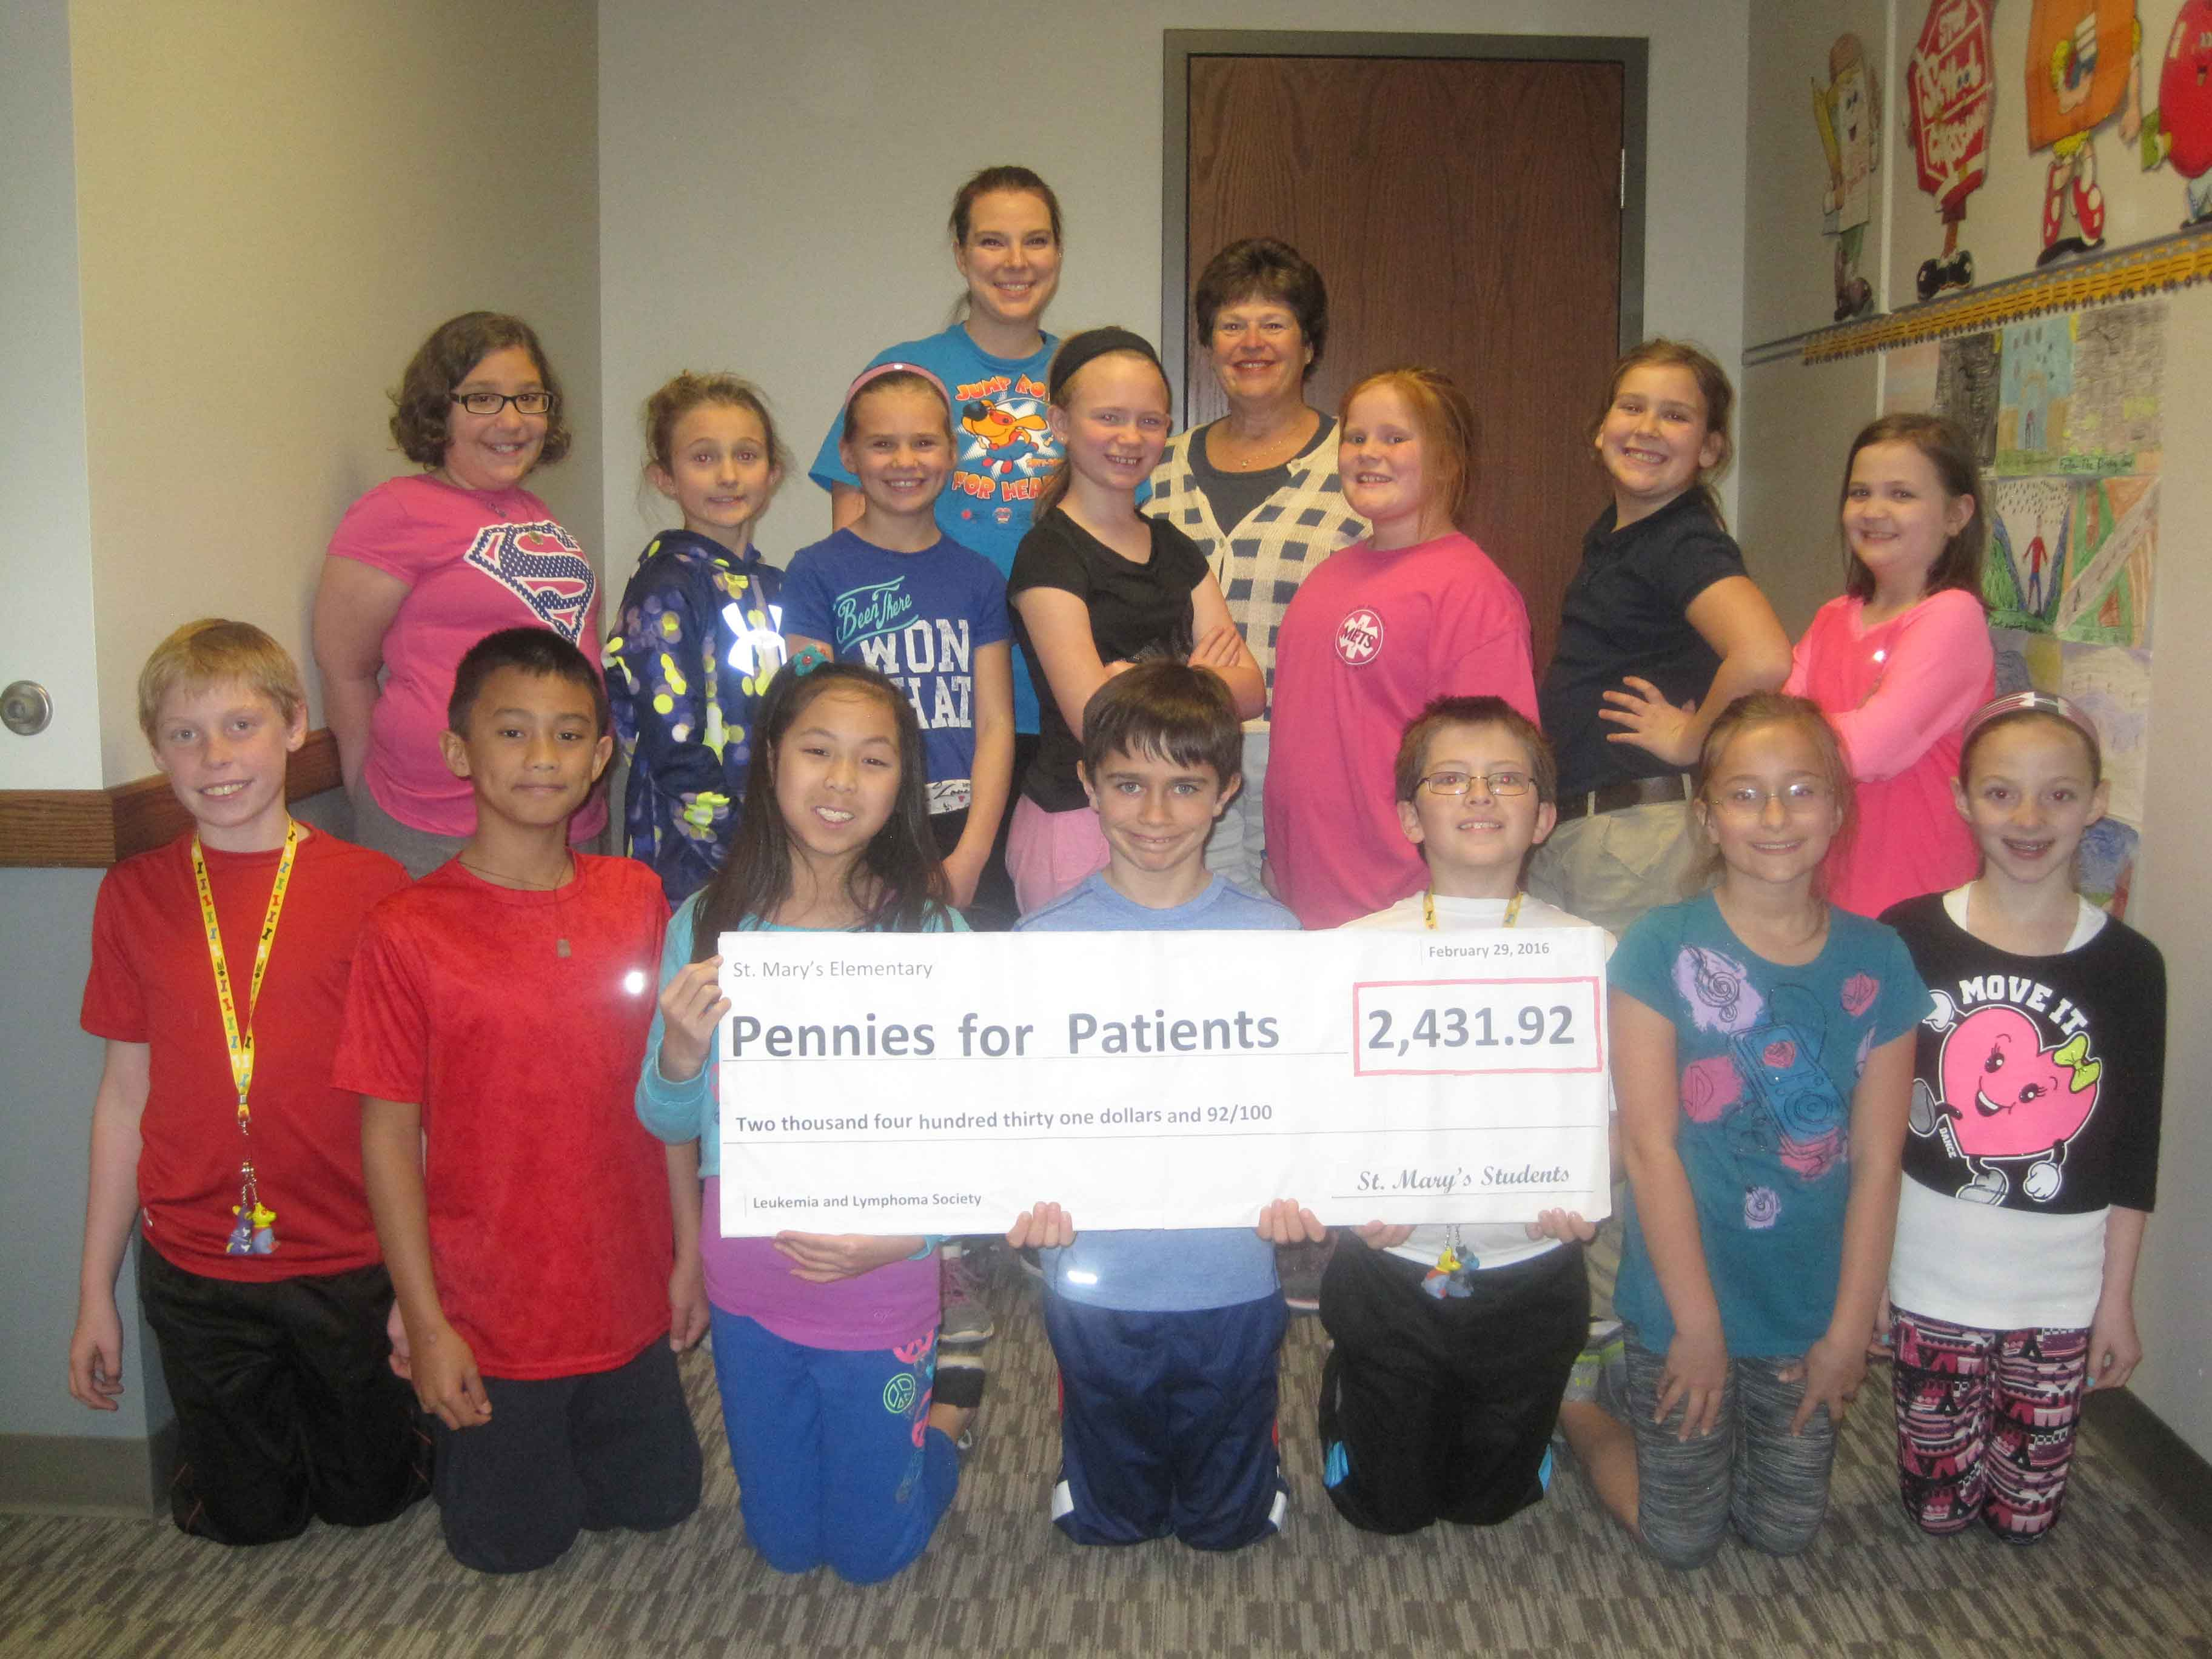 PENNY WAR—​St. Mary​ Catholic​ School in Joplin had a penny war ​recently ​to raise money for the Leukemia and Lymphoma Society (LLS). The​ ​organization helps fund research for blood cancers, as well as provide education and patient services. The students brought in change over the course of​ seven ​days, and raised a total of $2​,​431.92! They had so much fun competing with other classes and raising money for a great cause. Pictured ​were​ Mrs. Carly Barwick​, ​her students​, and ​St. Mary School Principal Ann Hamlet. (The Mirror)​